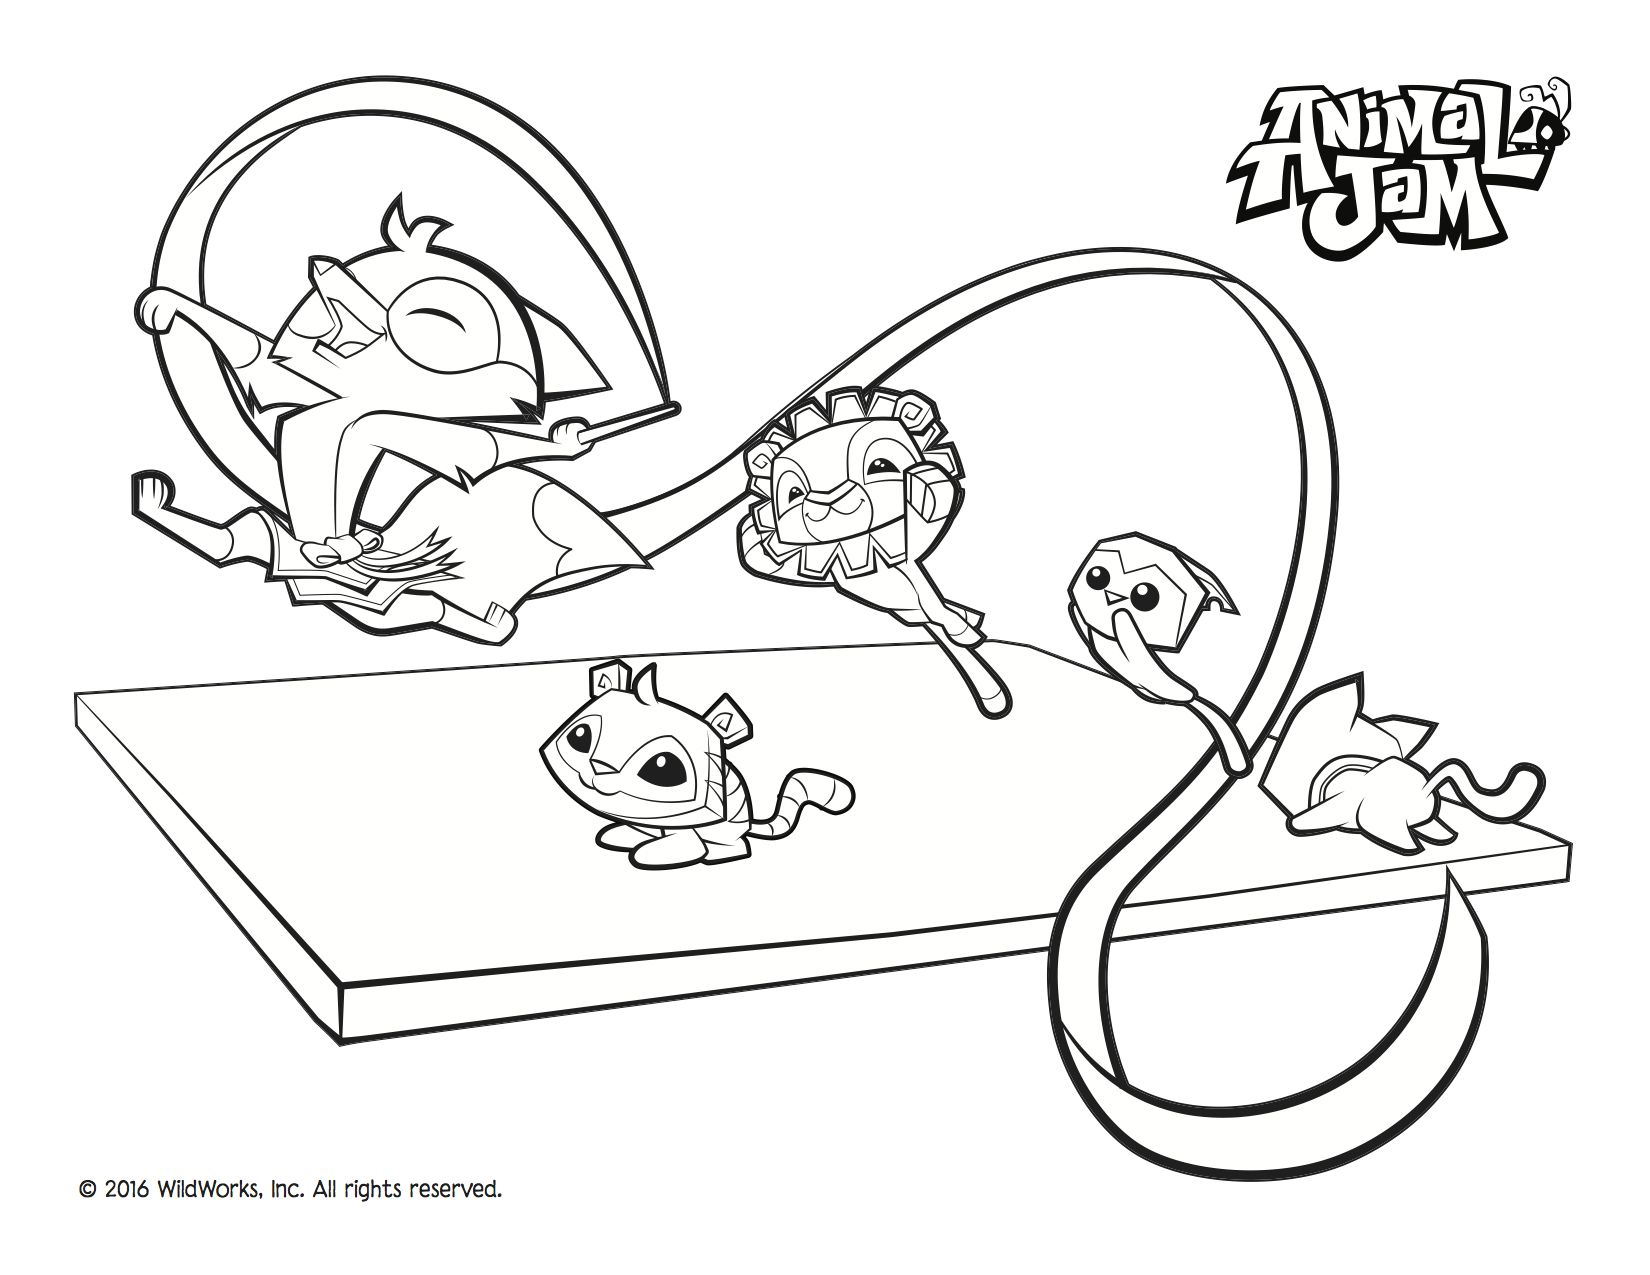 More Summer Games Fun With This Awesome Coloring Sheet From Animal Jam Download And Celebrate